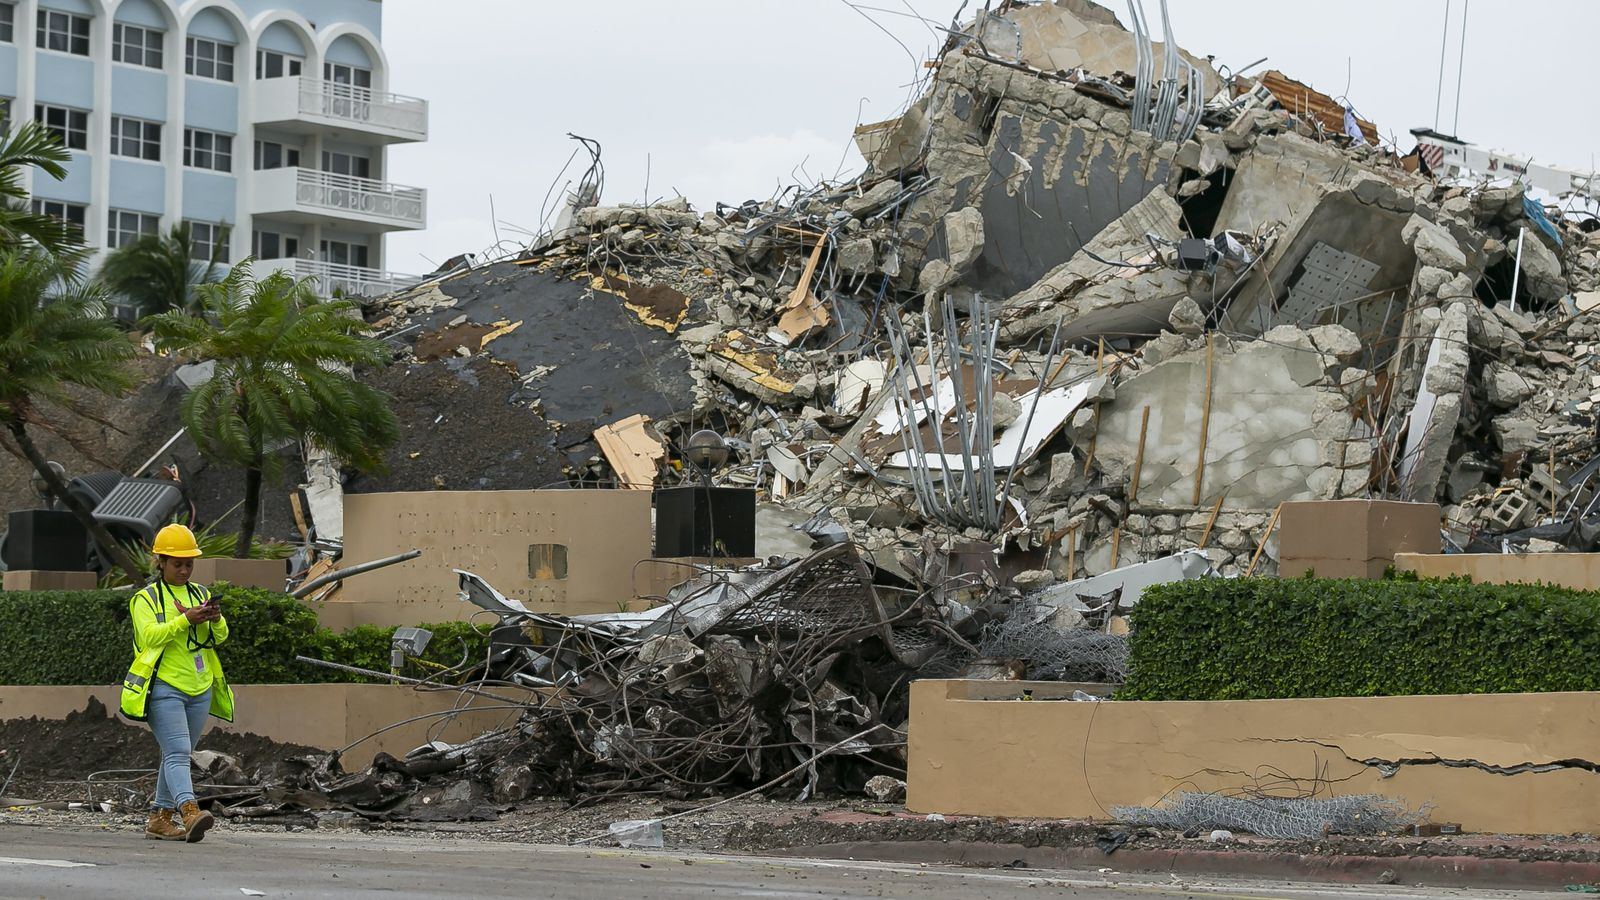 A worker makes her way past the rubble and debris of the Champlain Towers South condo in Surfside, Fla. on Tuesday, July 6, 2021.  (Matias J. Ocner/Miami Herald via AP)